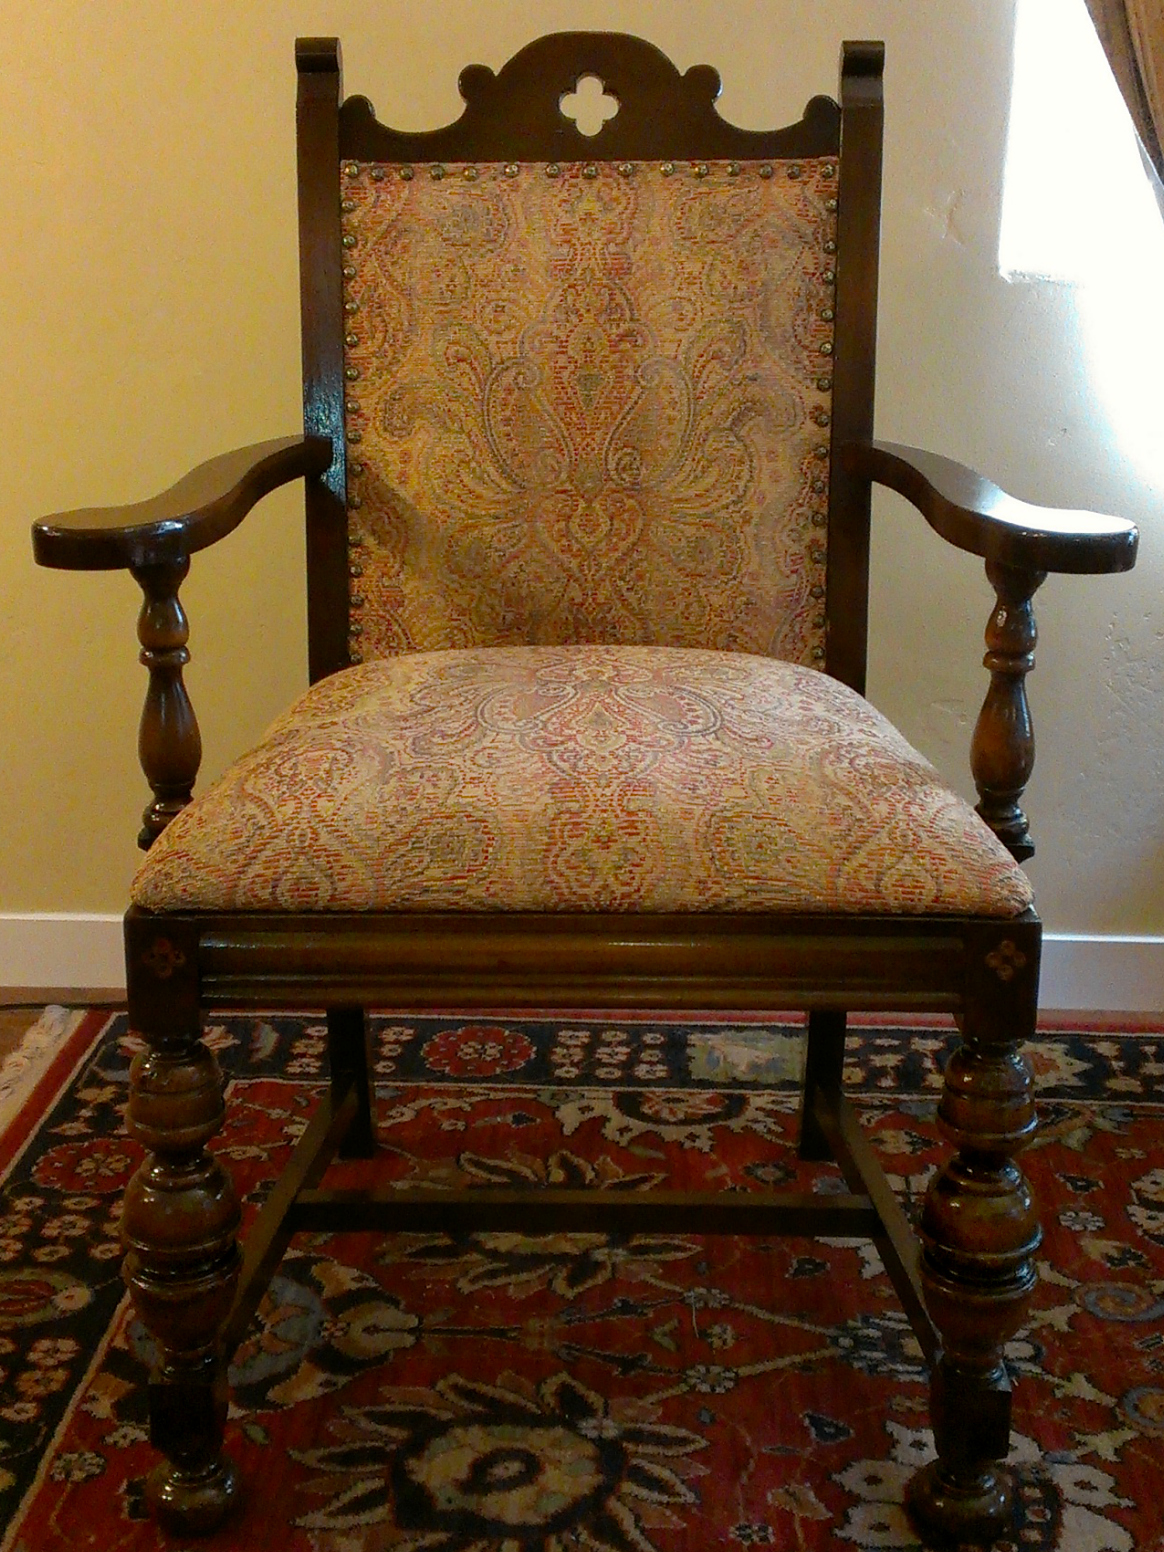 Diy chair upholstery - Diy Upholstered Chair Kinzie Balfour